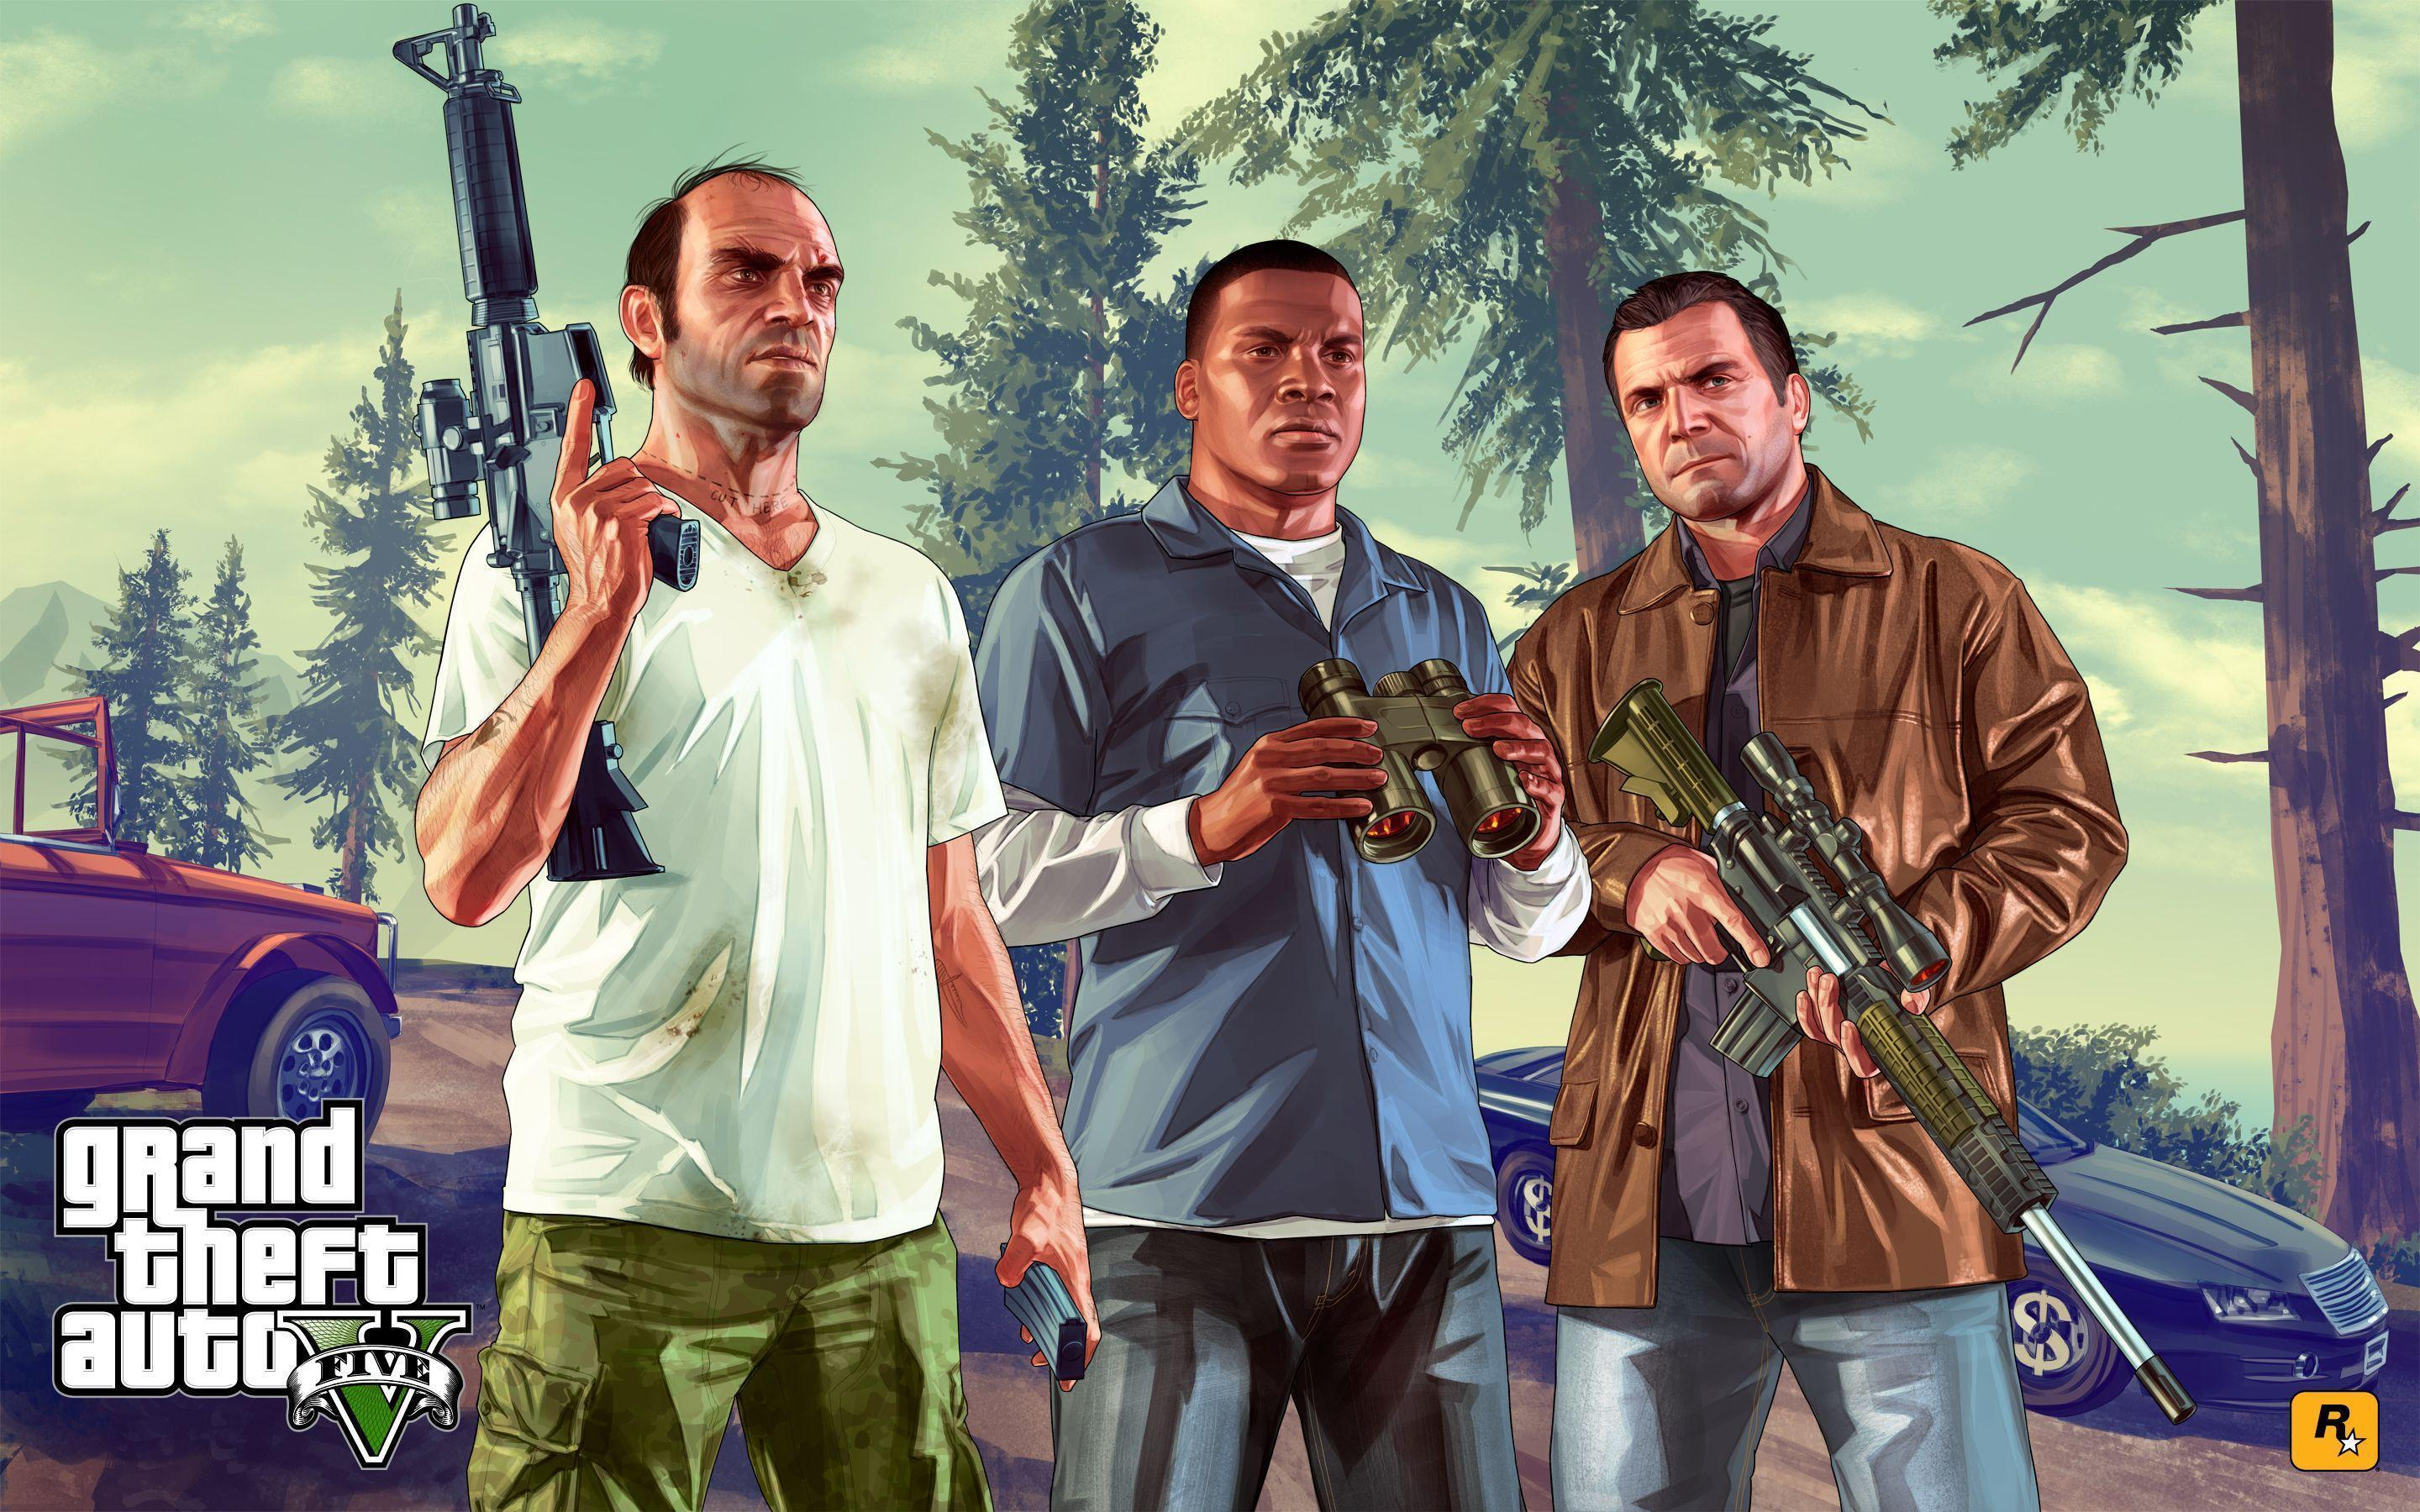 Grand Theft Auto V Wallpapers Top Free Grand Theft Auto V